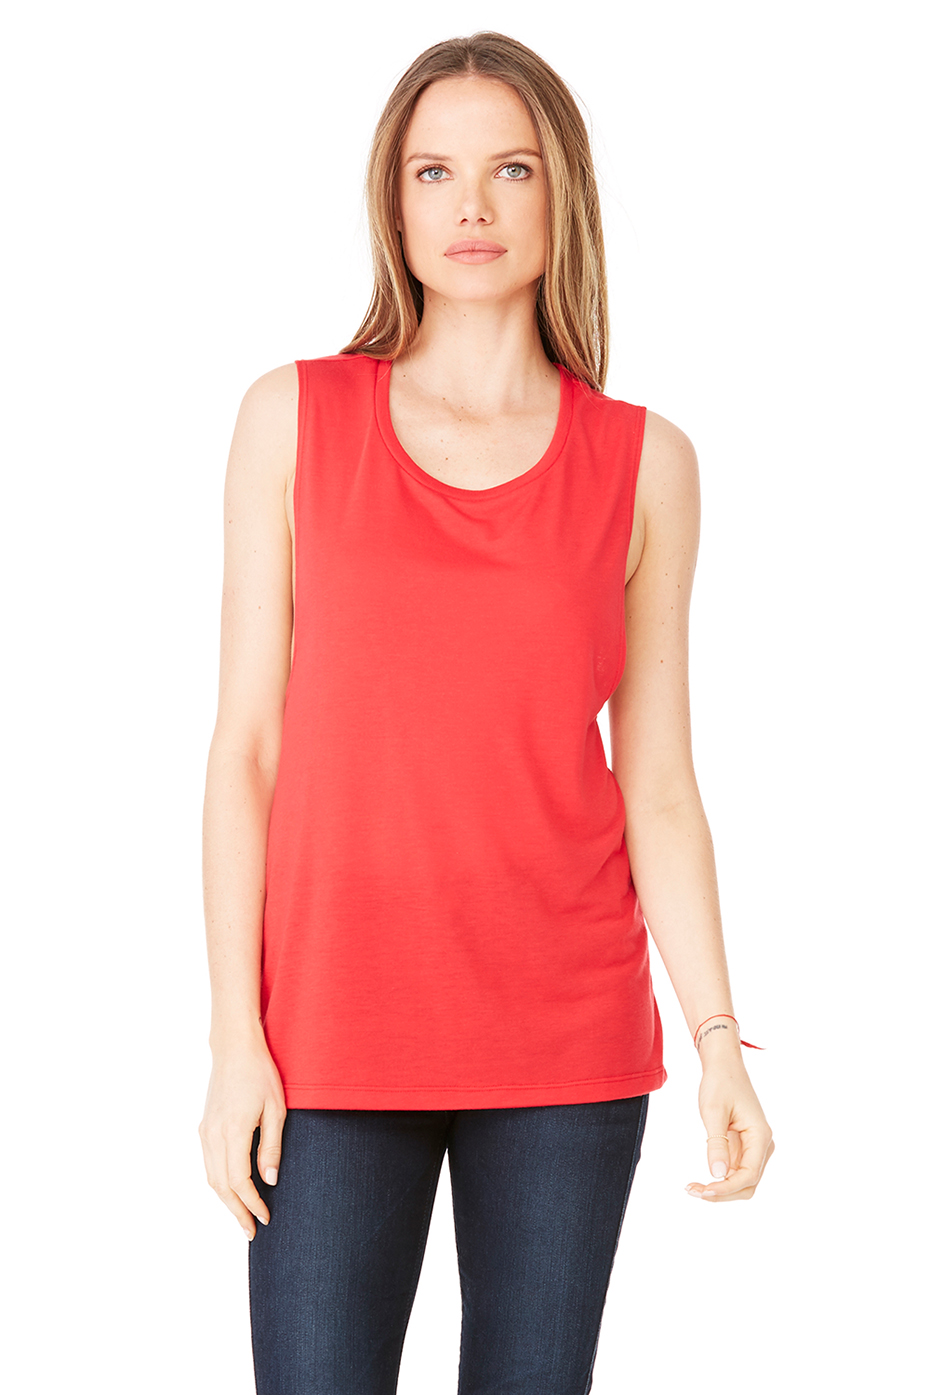 Salt Life women's tanks are made from high quality fabrics and deliver a comfortable fit and shoreside attitude. Look great in the Salt Life ladies tank top.